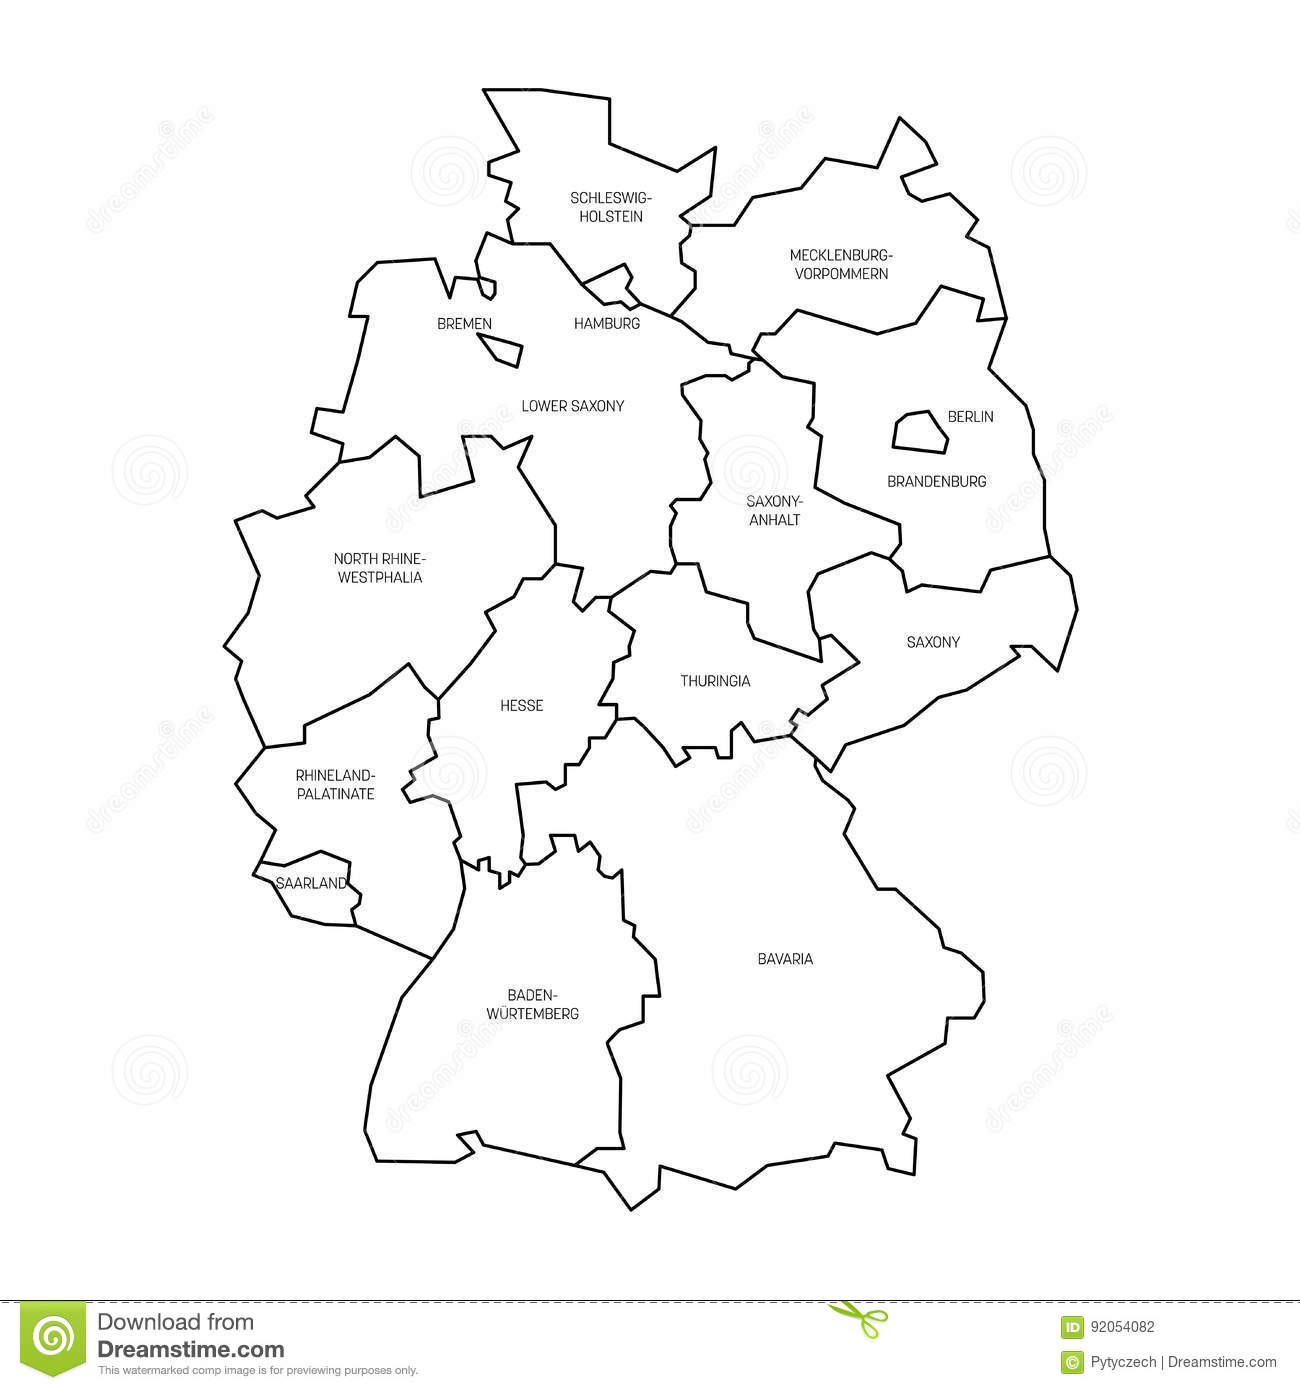 Map Of Germany Devided To Federal States And Citystates - Germany map simple